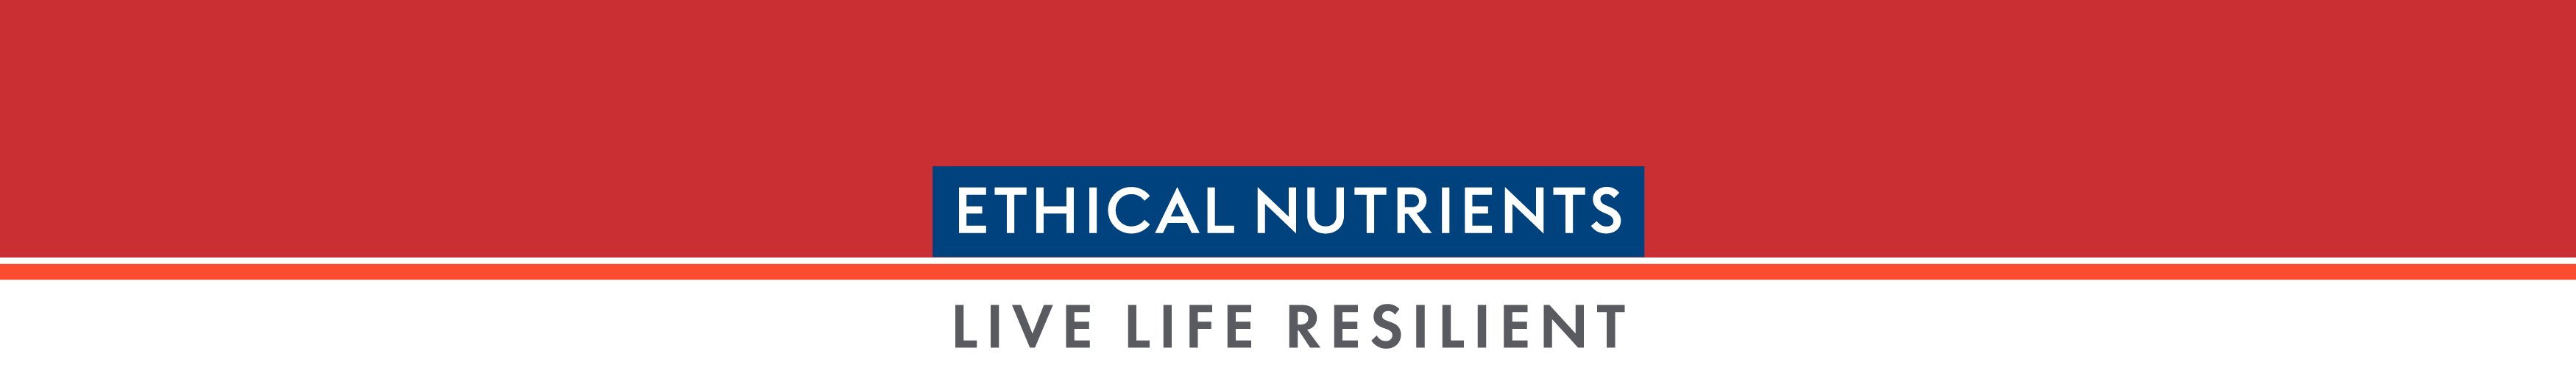 Ethical Nutrients MBG